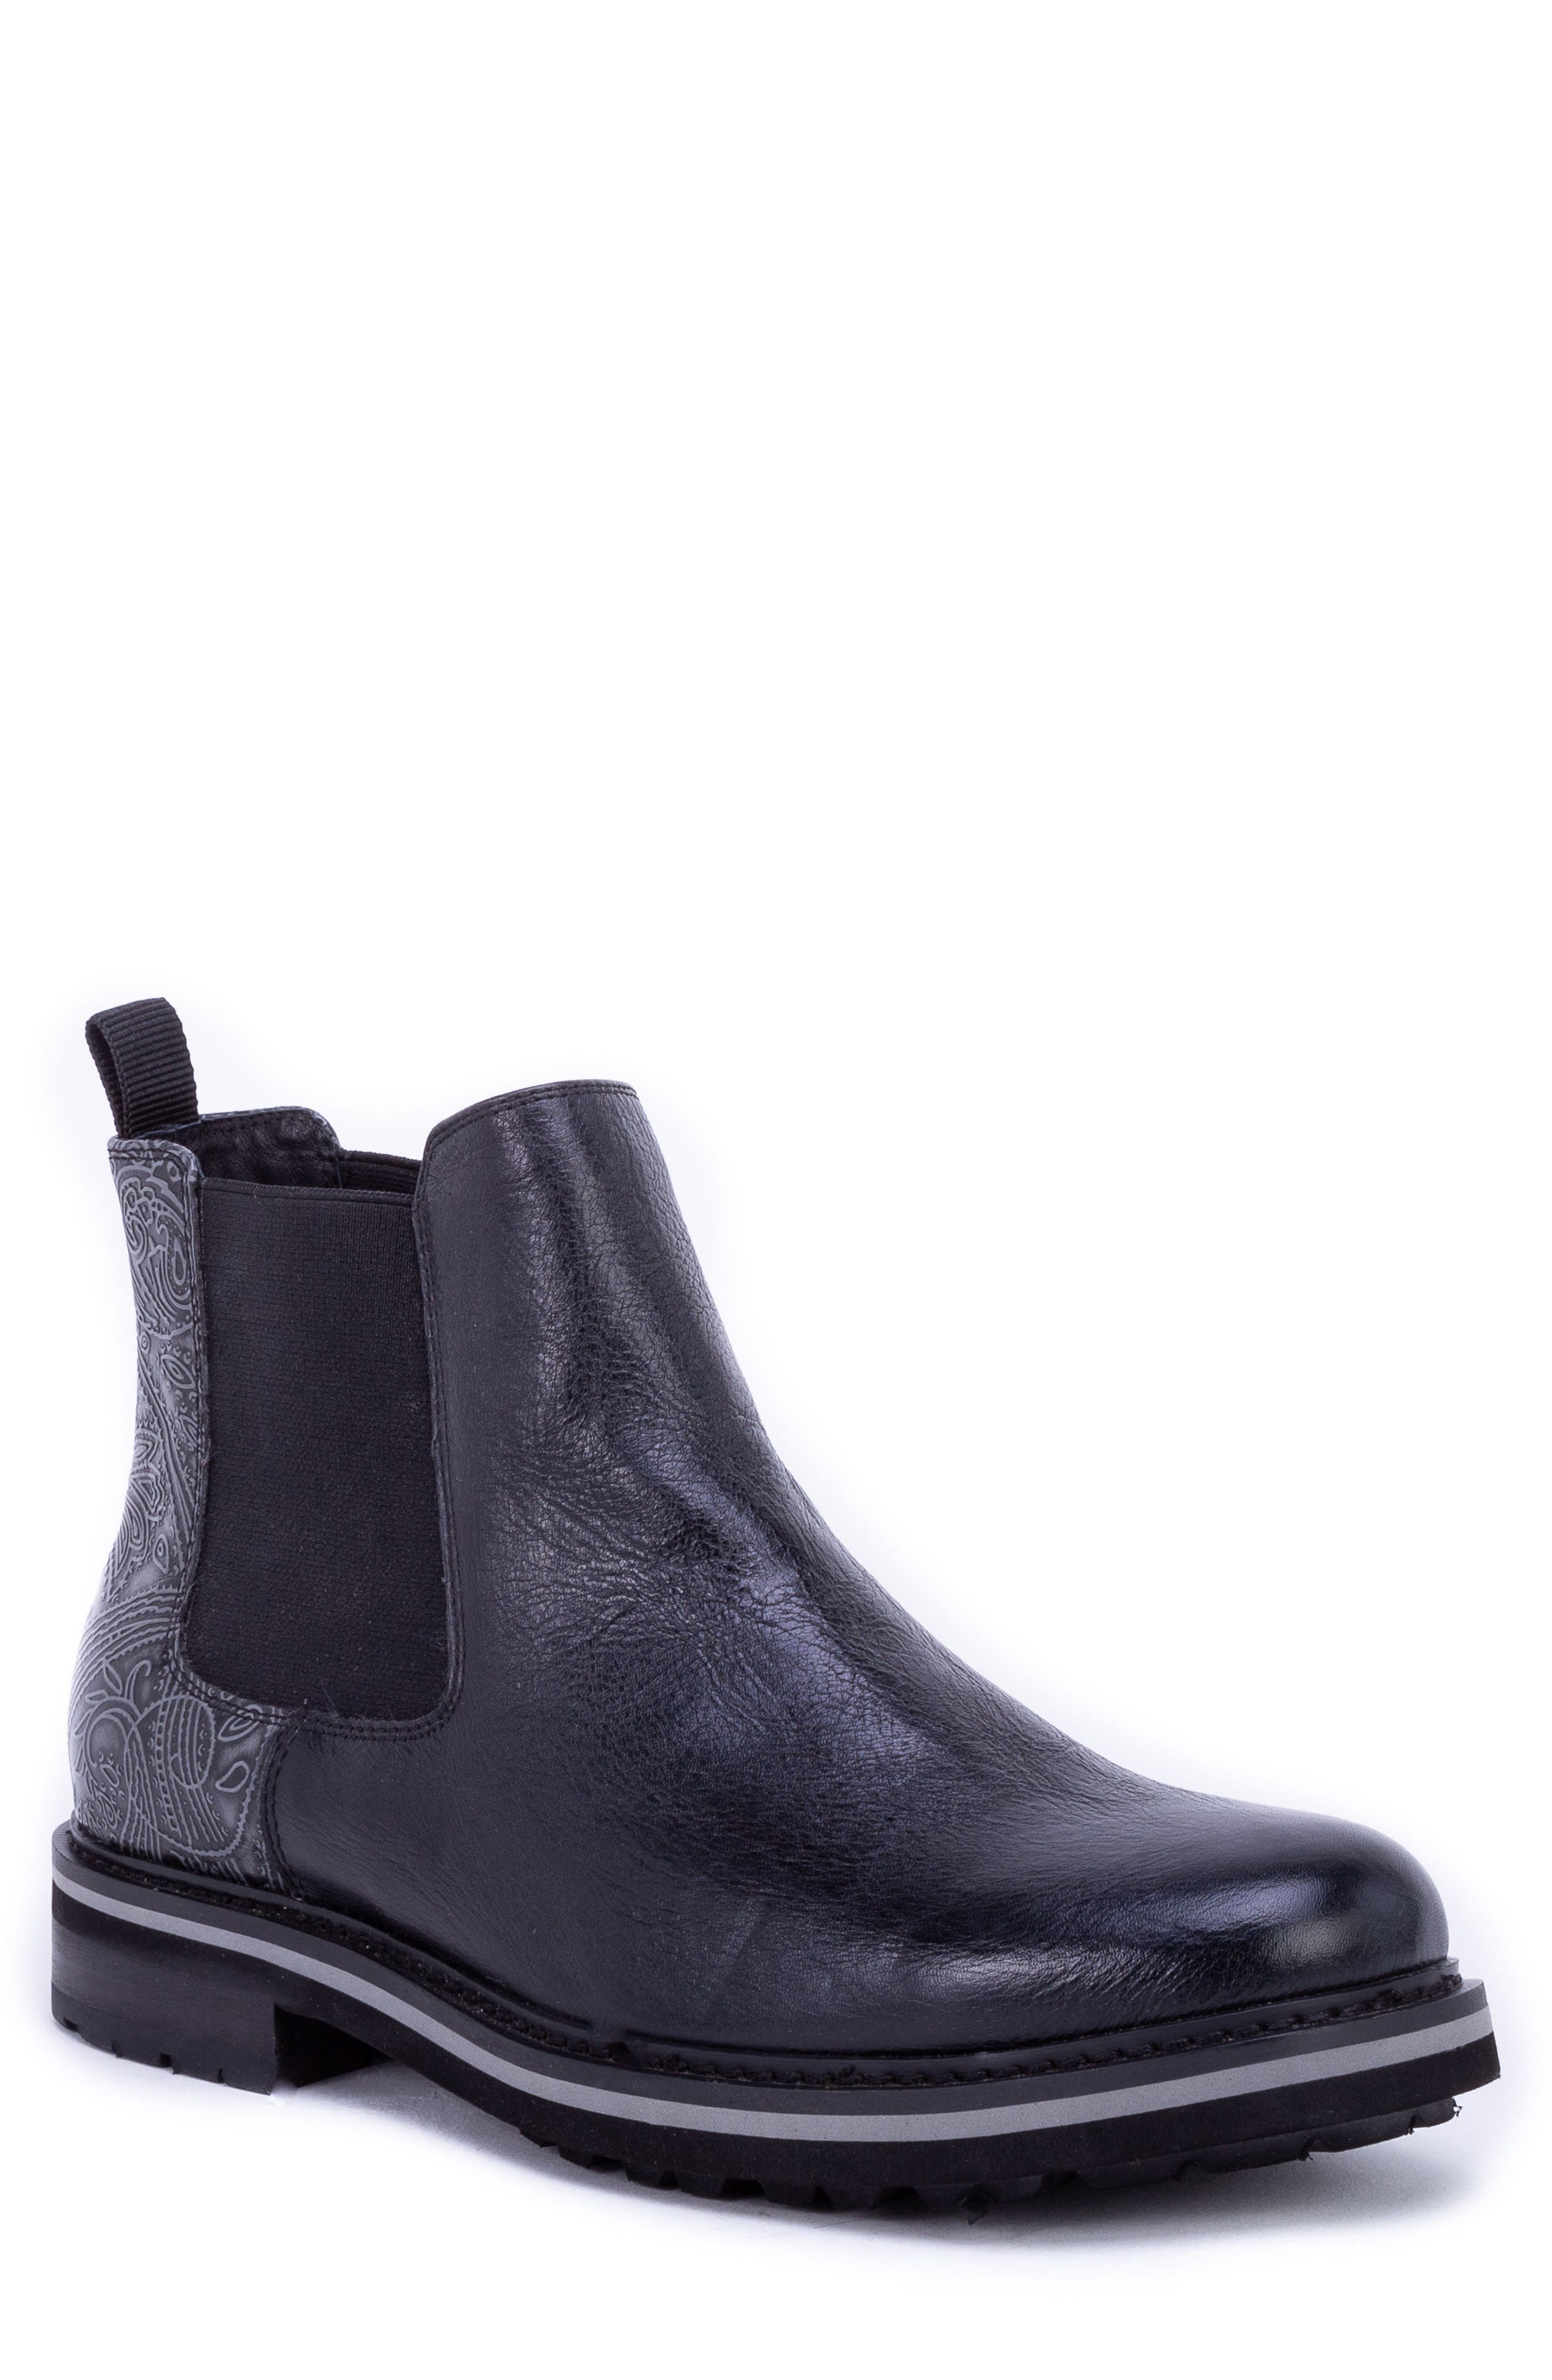 Yates Textured Chelsea Boot,                         Main,                         color, BLACK LEATHER